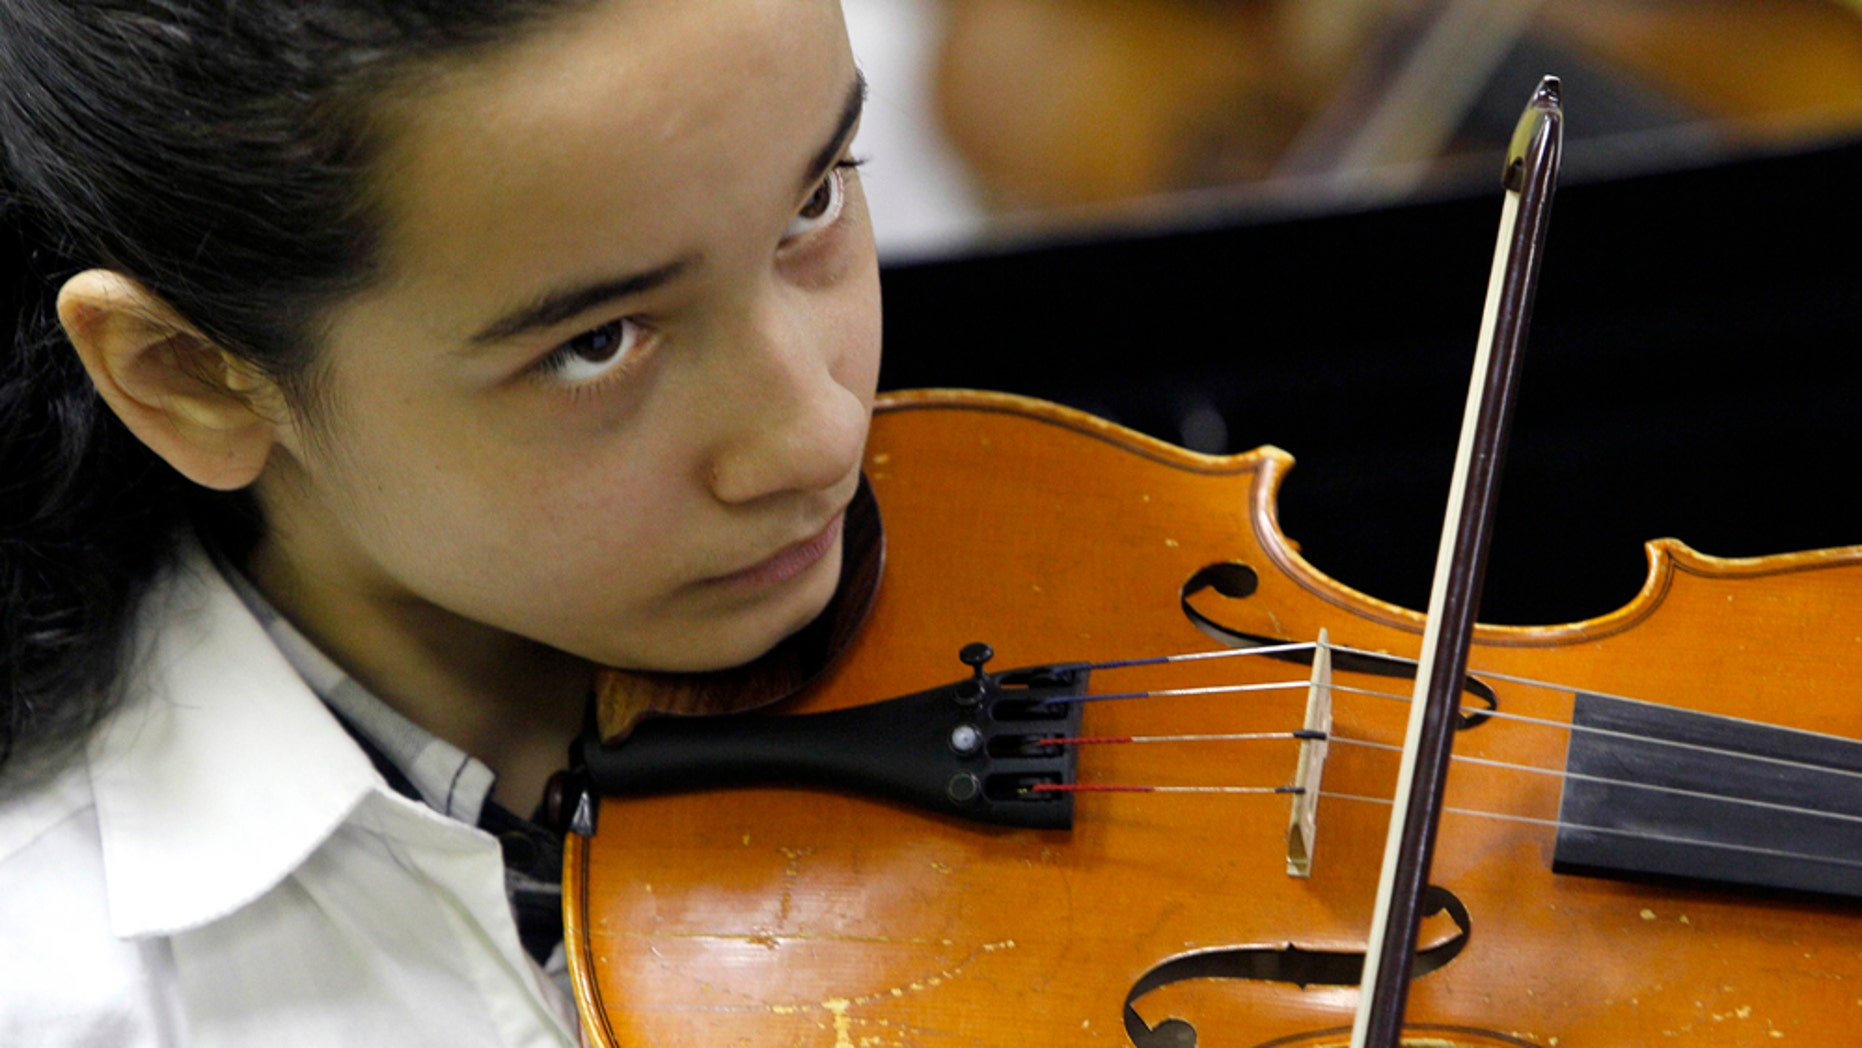 """In this May 5, 2011 photo, Nidalis Burgos keeps her eye on the conductor during a rehearsal for the after-school orchestra at Lafayette Specialty School in Chicago. Nadalis' mother calls her daughter's violin her """"soul mate."""" She practices anywhere she can, in her bedroom, in the kitchen, on her back porch so she can hear the sound reverberate off the brick apartment buildings that line the alley. Usually, she warms up with """"Ode to Joy,"""" her mother's favorite song, and a fitting theme for a girl who truly seems to love playing. (AP Photo/Charles Rex Arbogast)"""